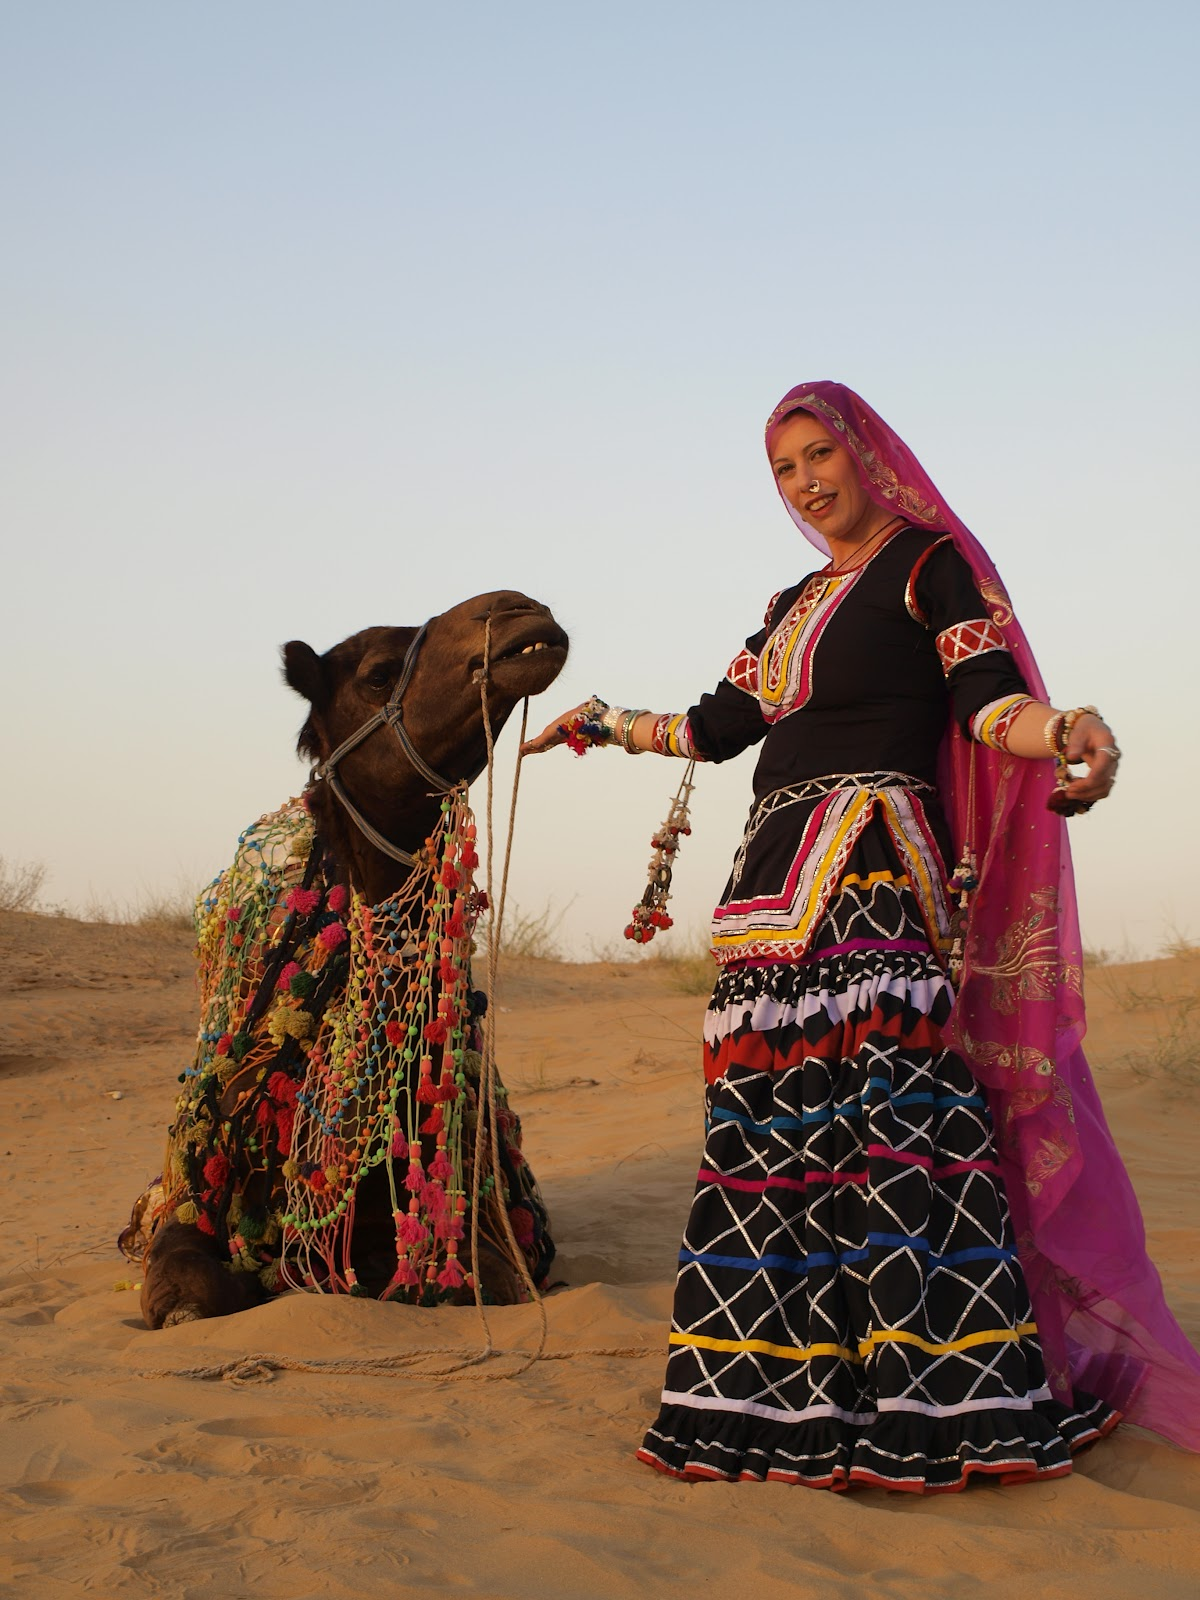 Dear Shira: Am I Too Overweight to Belly Dance?